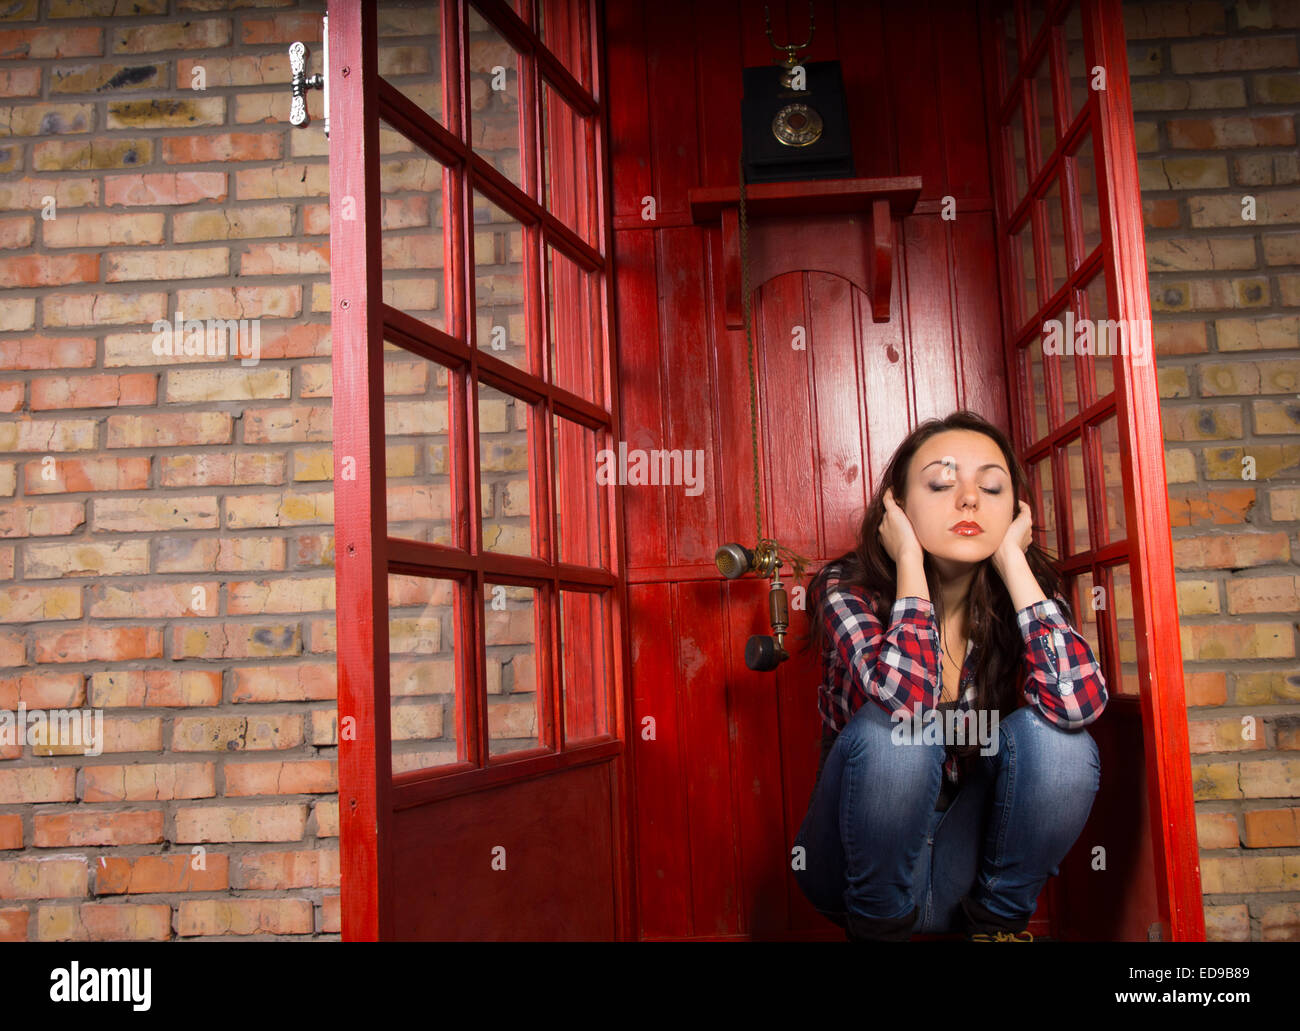 Upset woman sitting blocking her ears in a telephone booth as the handset dangles alongside her ear - Stock Image